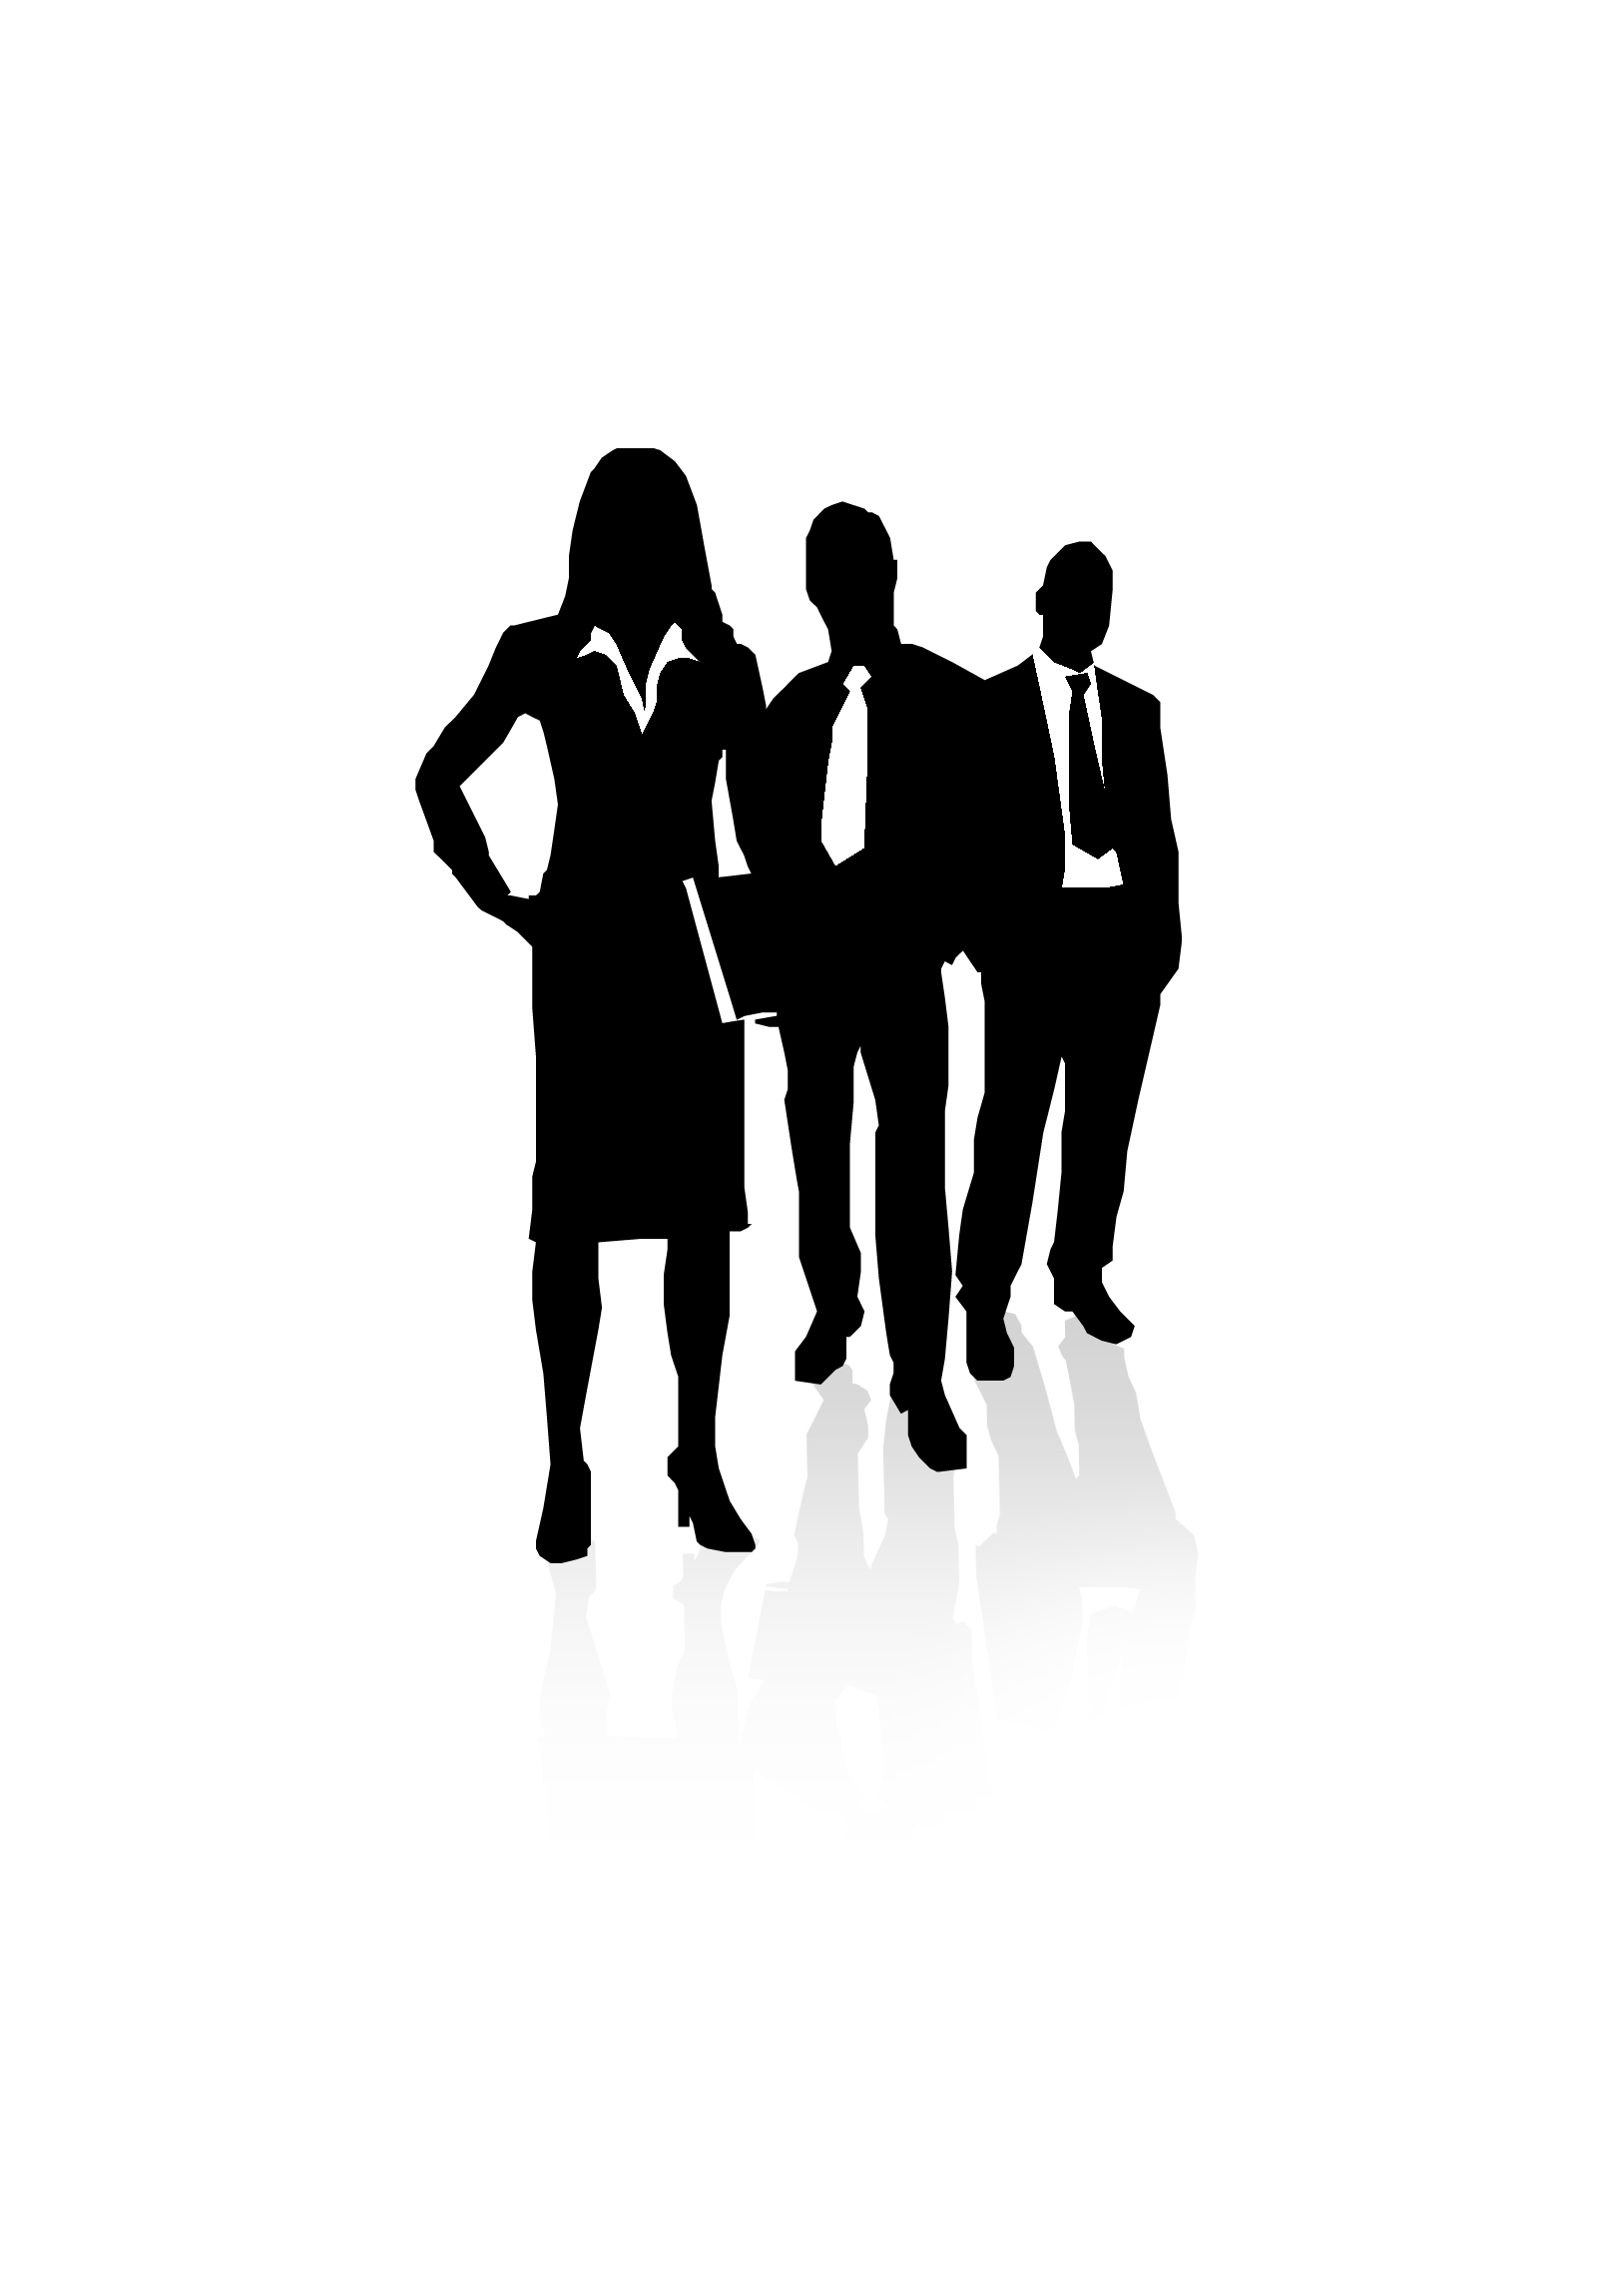 Professional clipart black and white Men Business clipart standing Businessmen